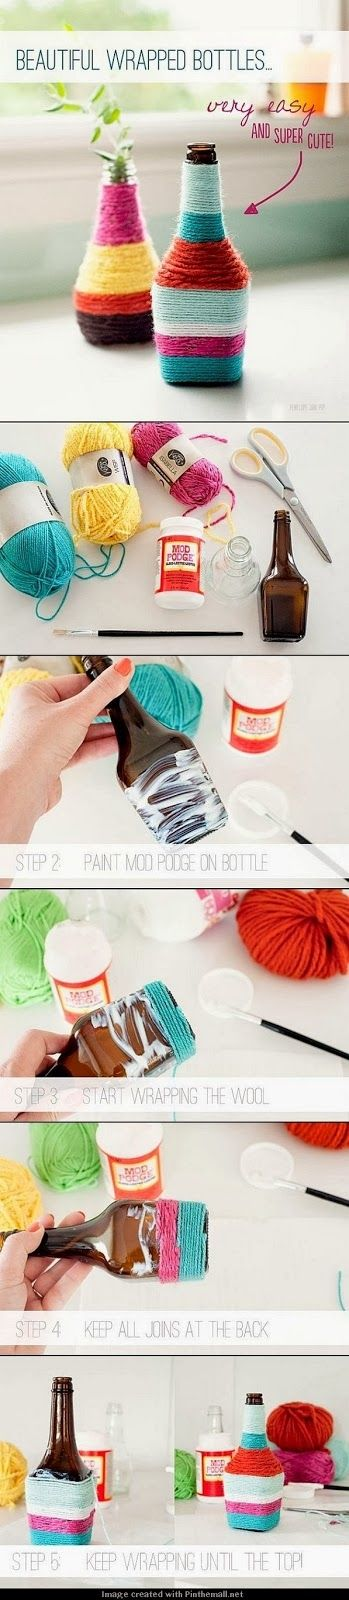 Beautiful wrapped bottles DIY beautiful diy yarn diy ideas diy crafts do it yourself crafty diy pictures bottle wrap